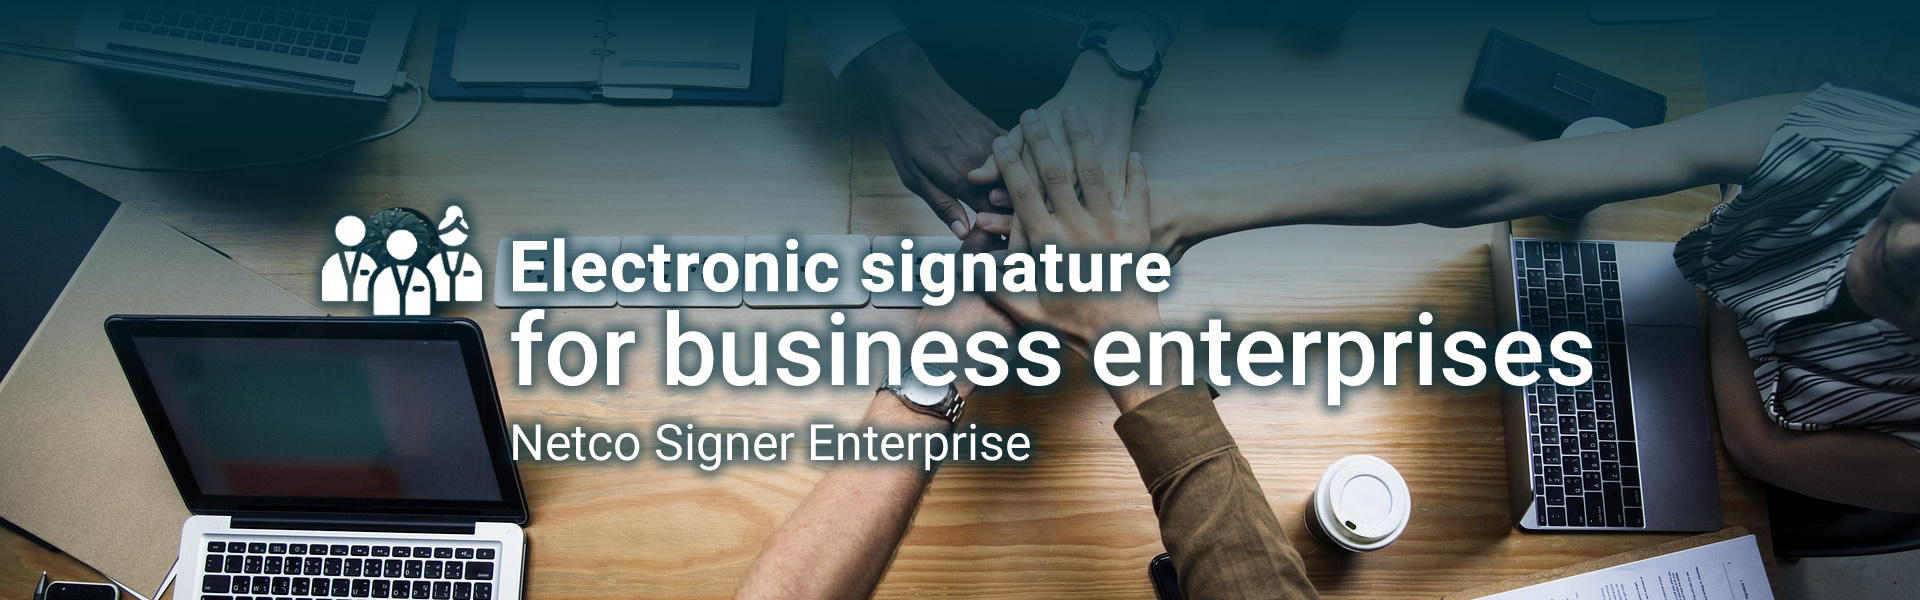 Electronic signature for business enterprise